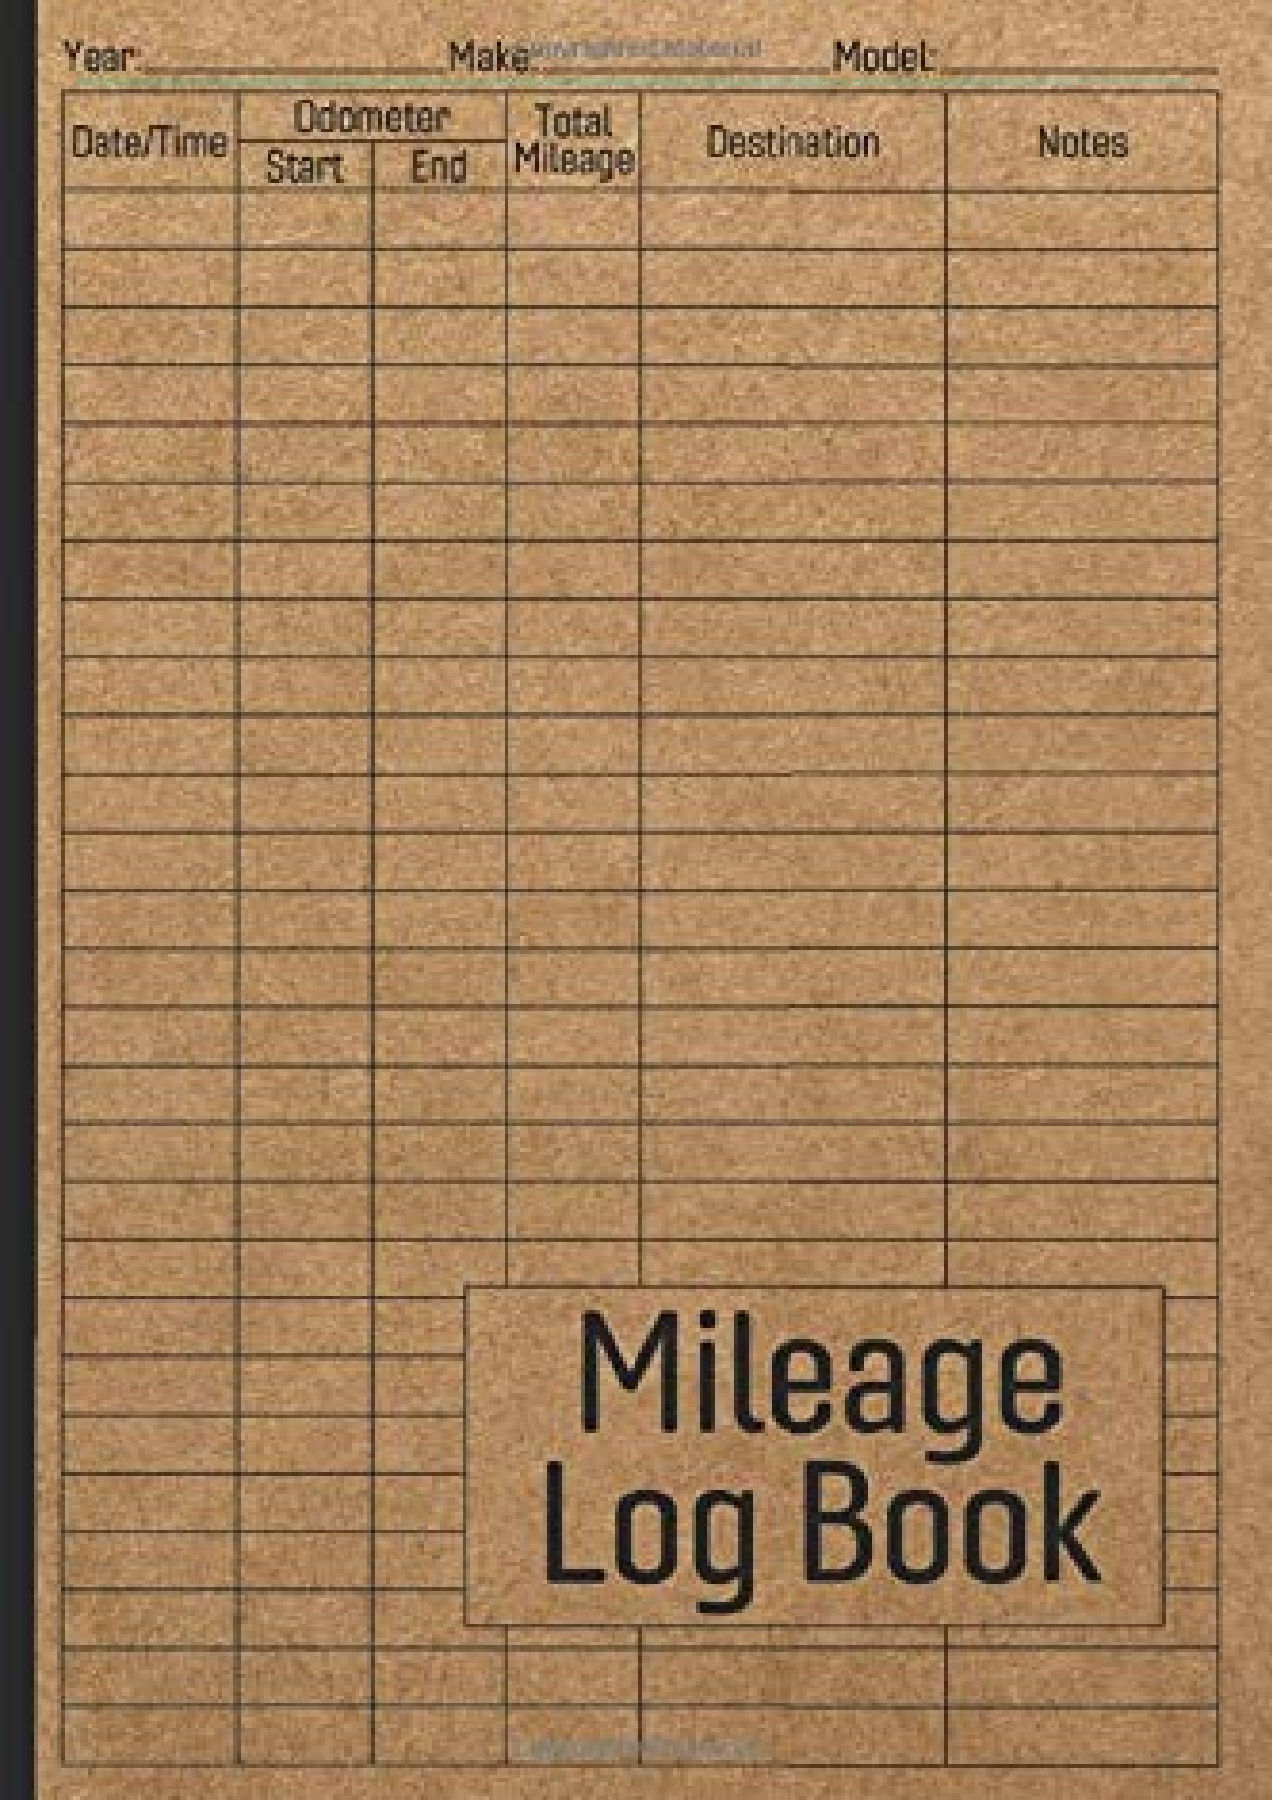 One of the most common uses for a log book is to track information as you drive. Pdf Mileage Log Book Vehicle Mileage Journal For Business Or Personal Taxes Automotive Daily Tracking Miles Record Book Odometer Tracker Logbook Automobile Truck Or Car Owner Gift Notebook Kindle